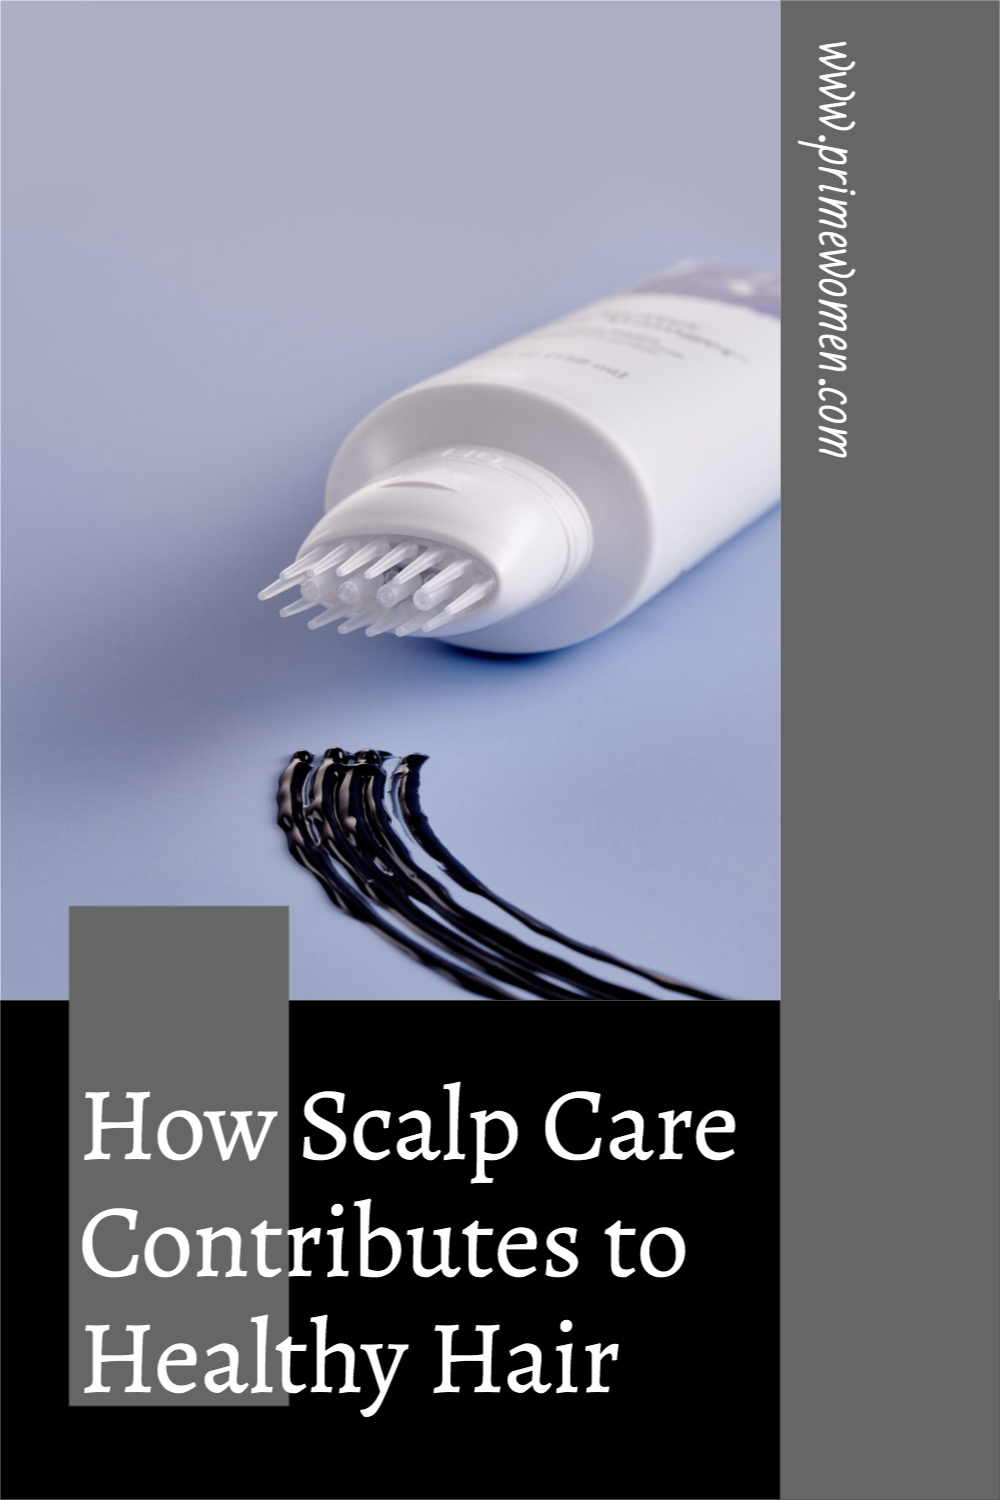 How-Scalp-Care-Contributes-to-Healthy-Hair